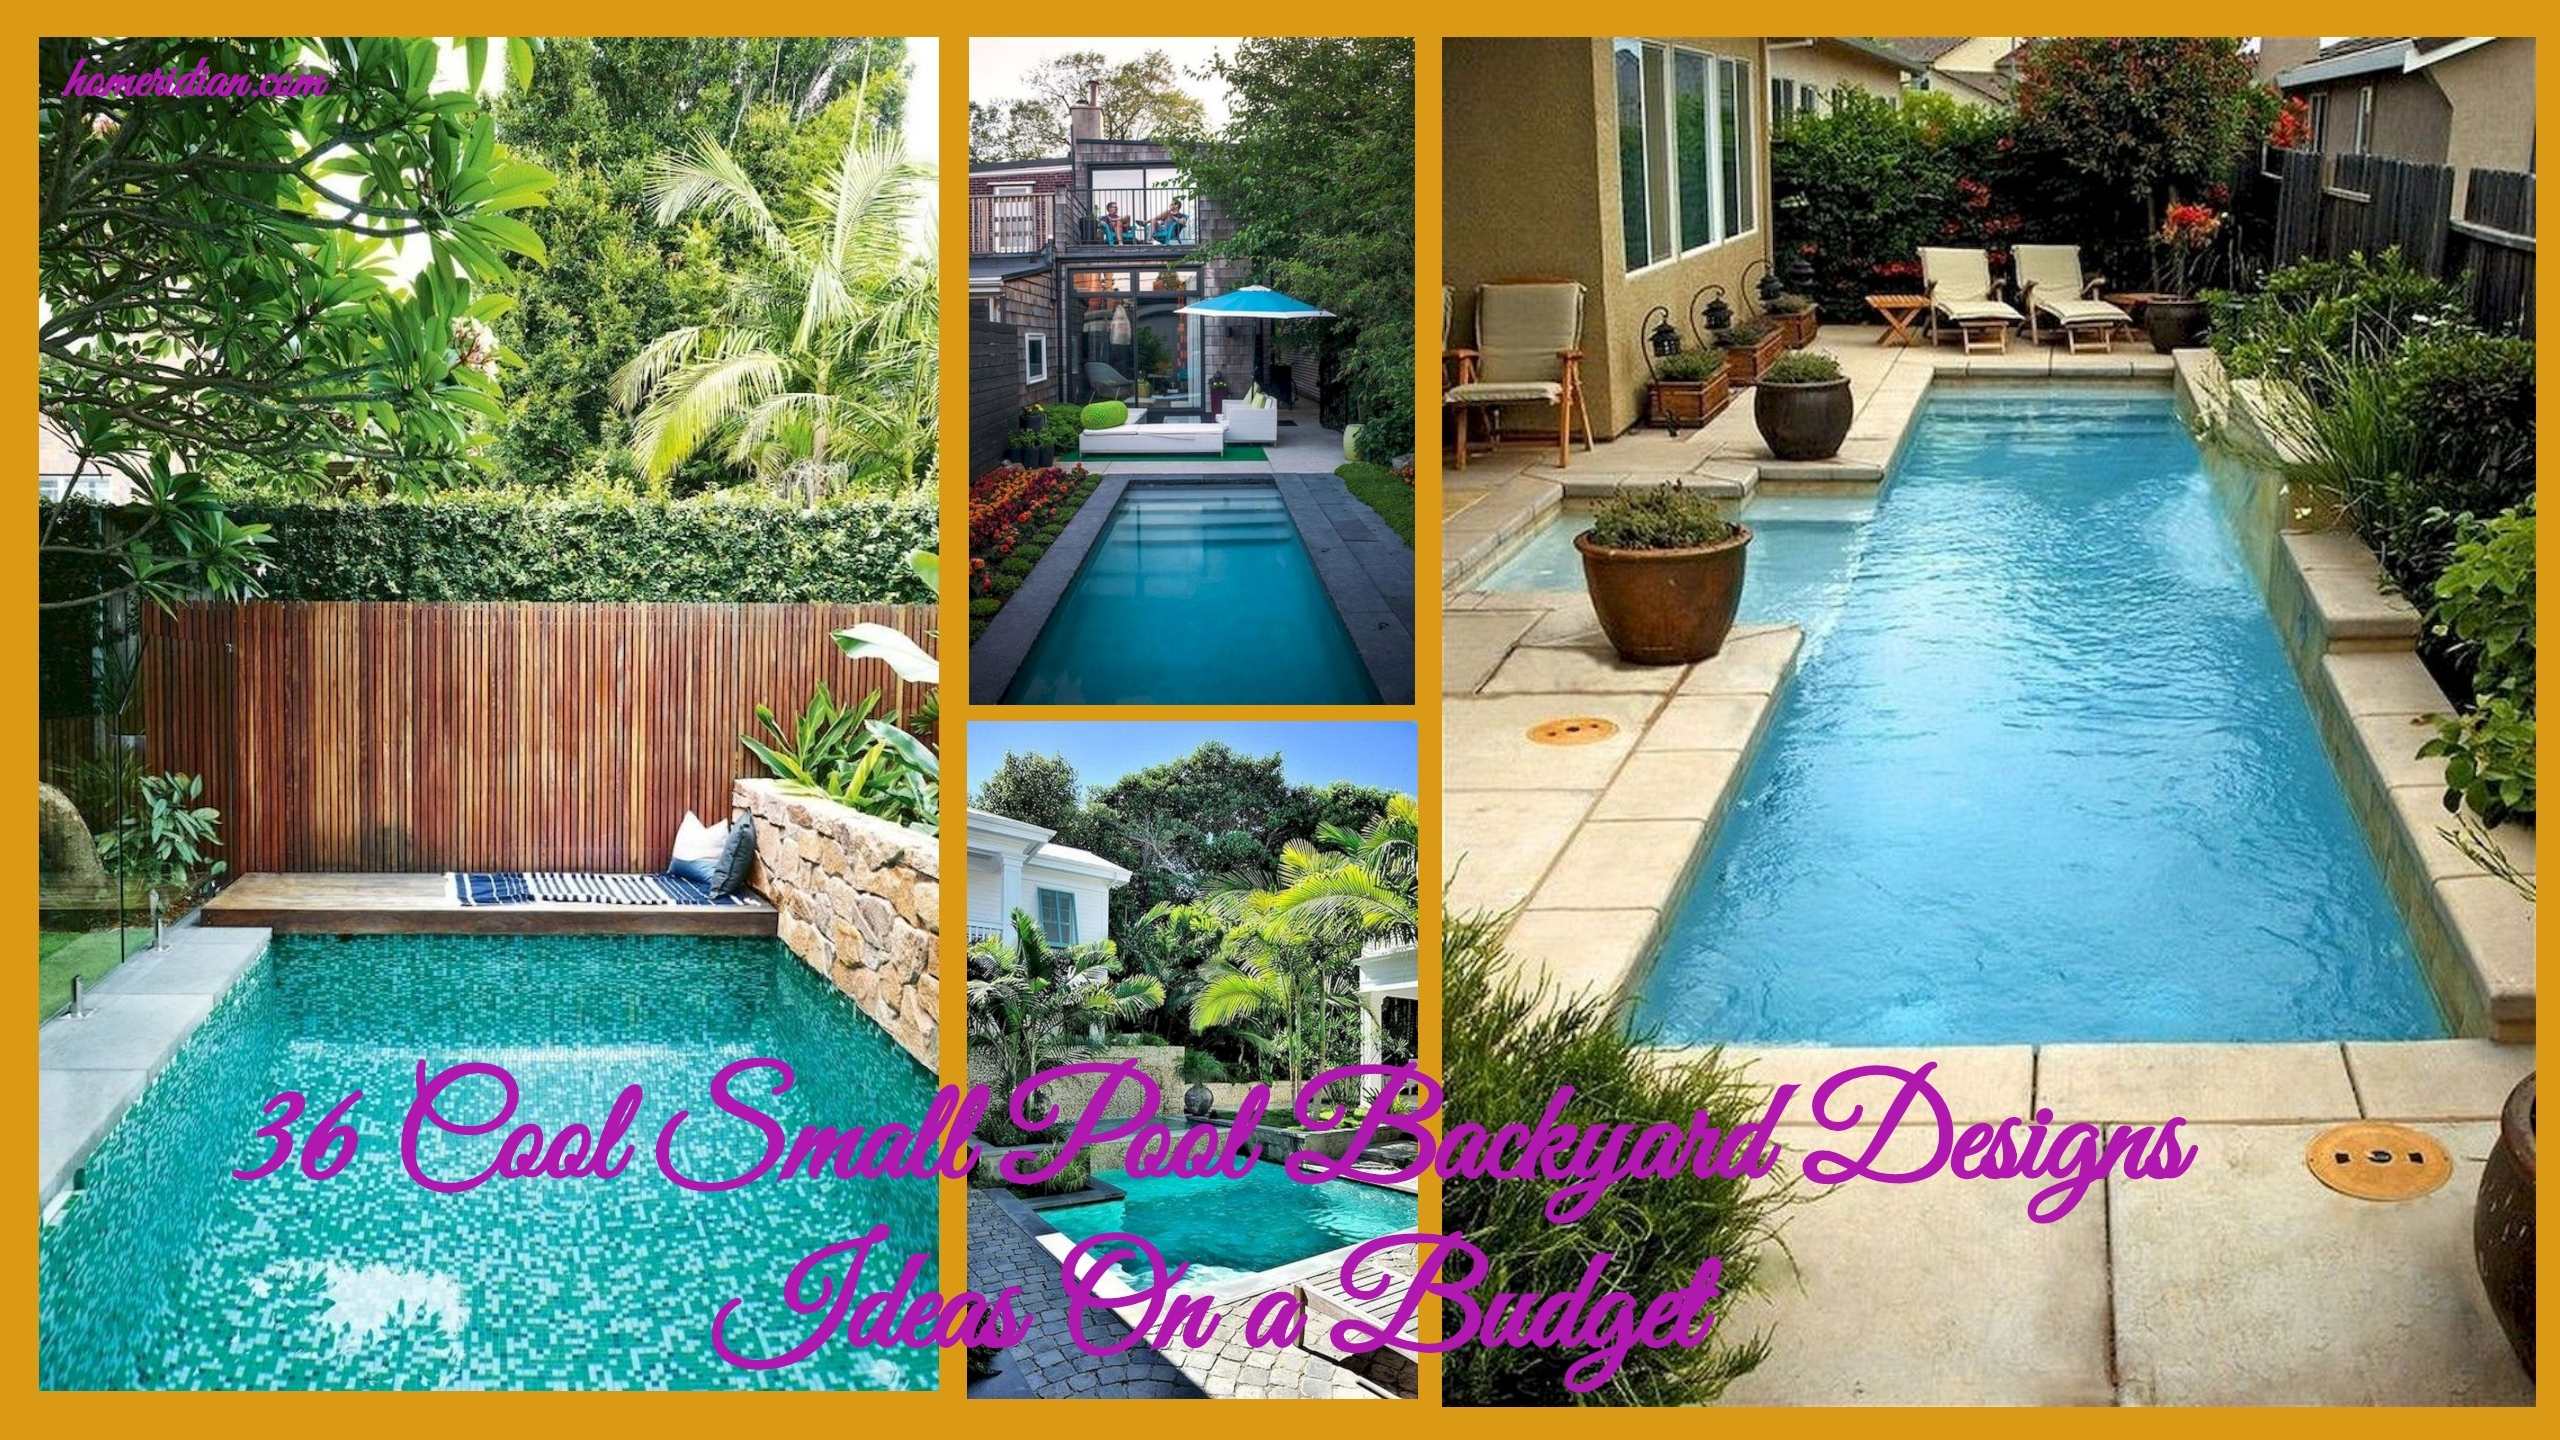 36 Cool Small Pool Backyard Designs Ideas On A Budget Homeridian in Small Backyard Design Ideas On A Budget